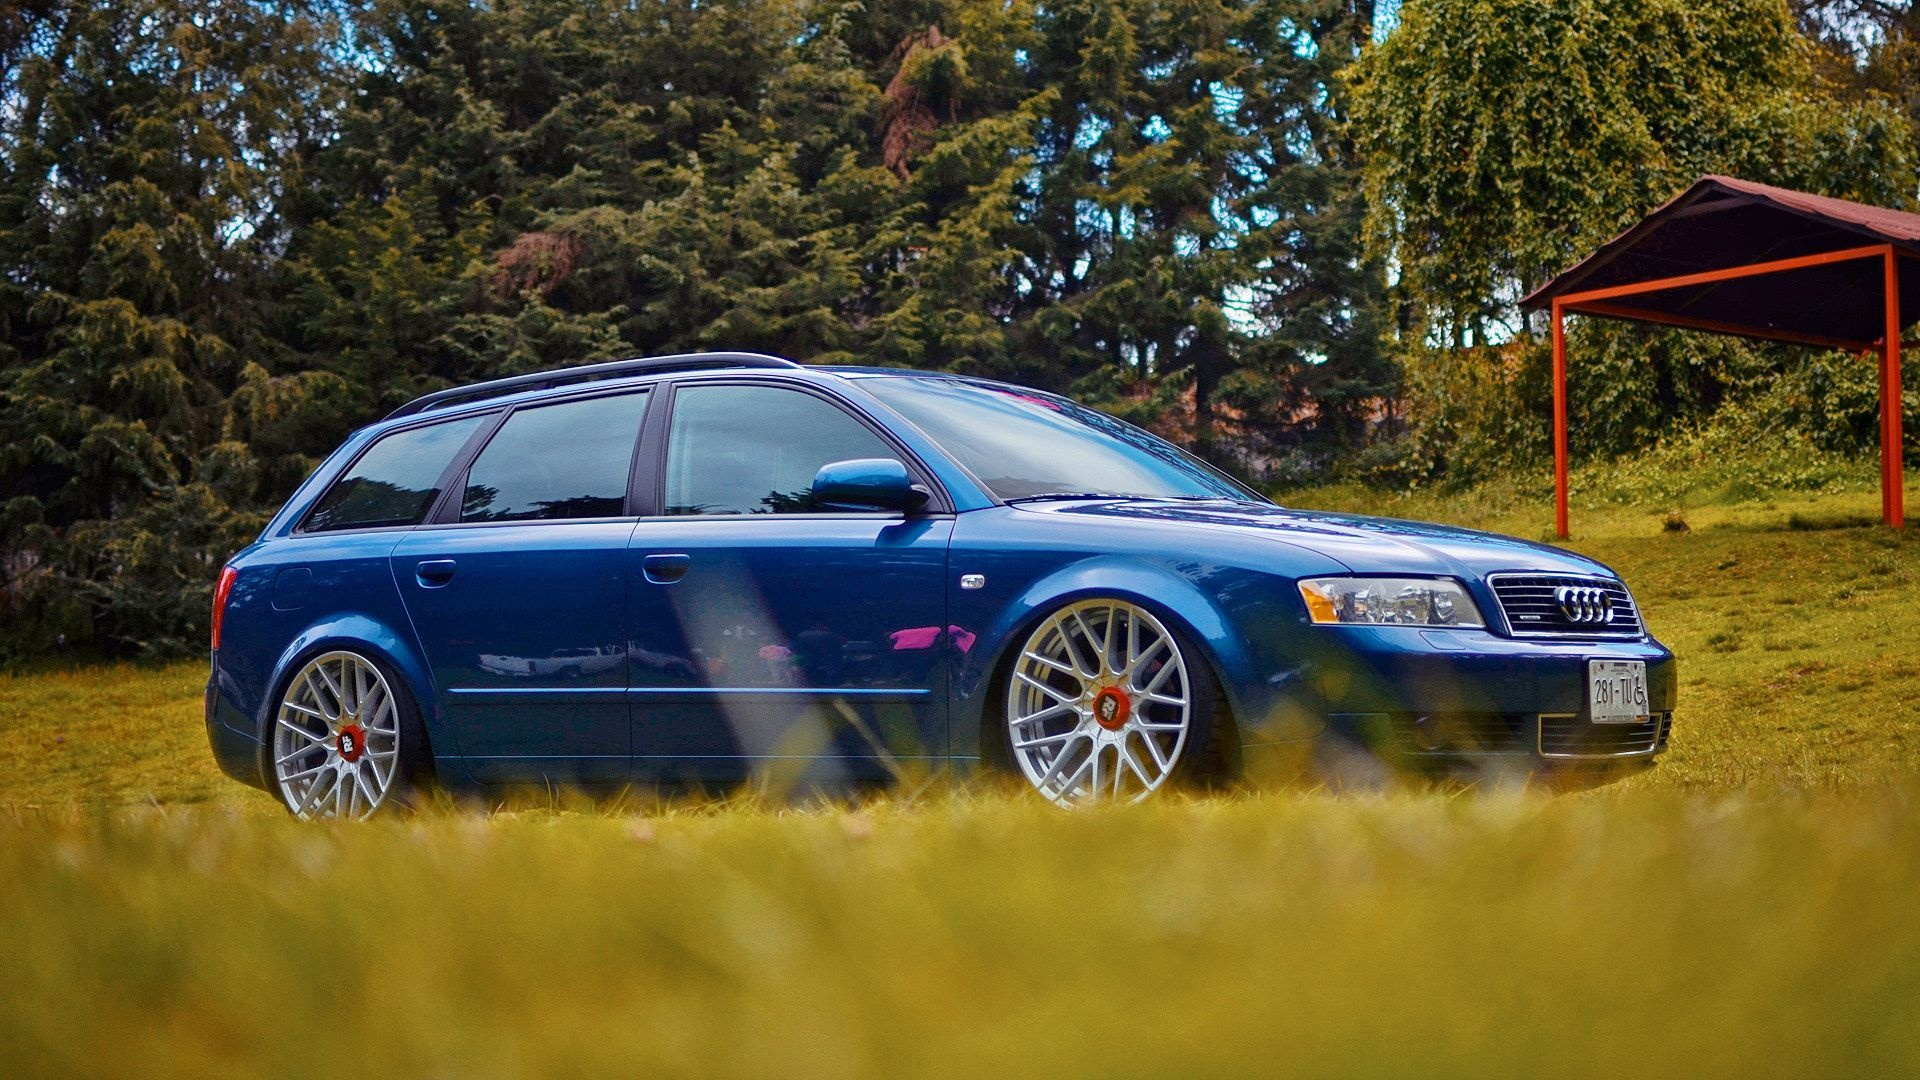 Audi A4 2001 Modified Awesome Audi Avant Amazing Audi Avant Bagged Sittin In Rse Rotiforms-2696 Of Elegant Audi A4 2001 Modified